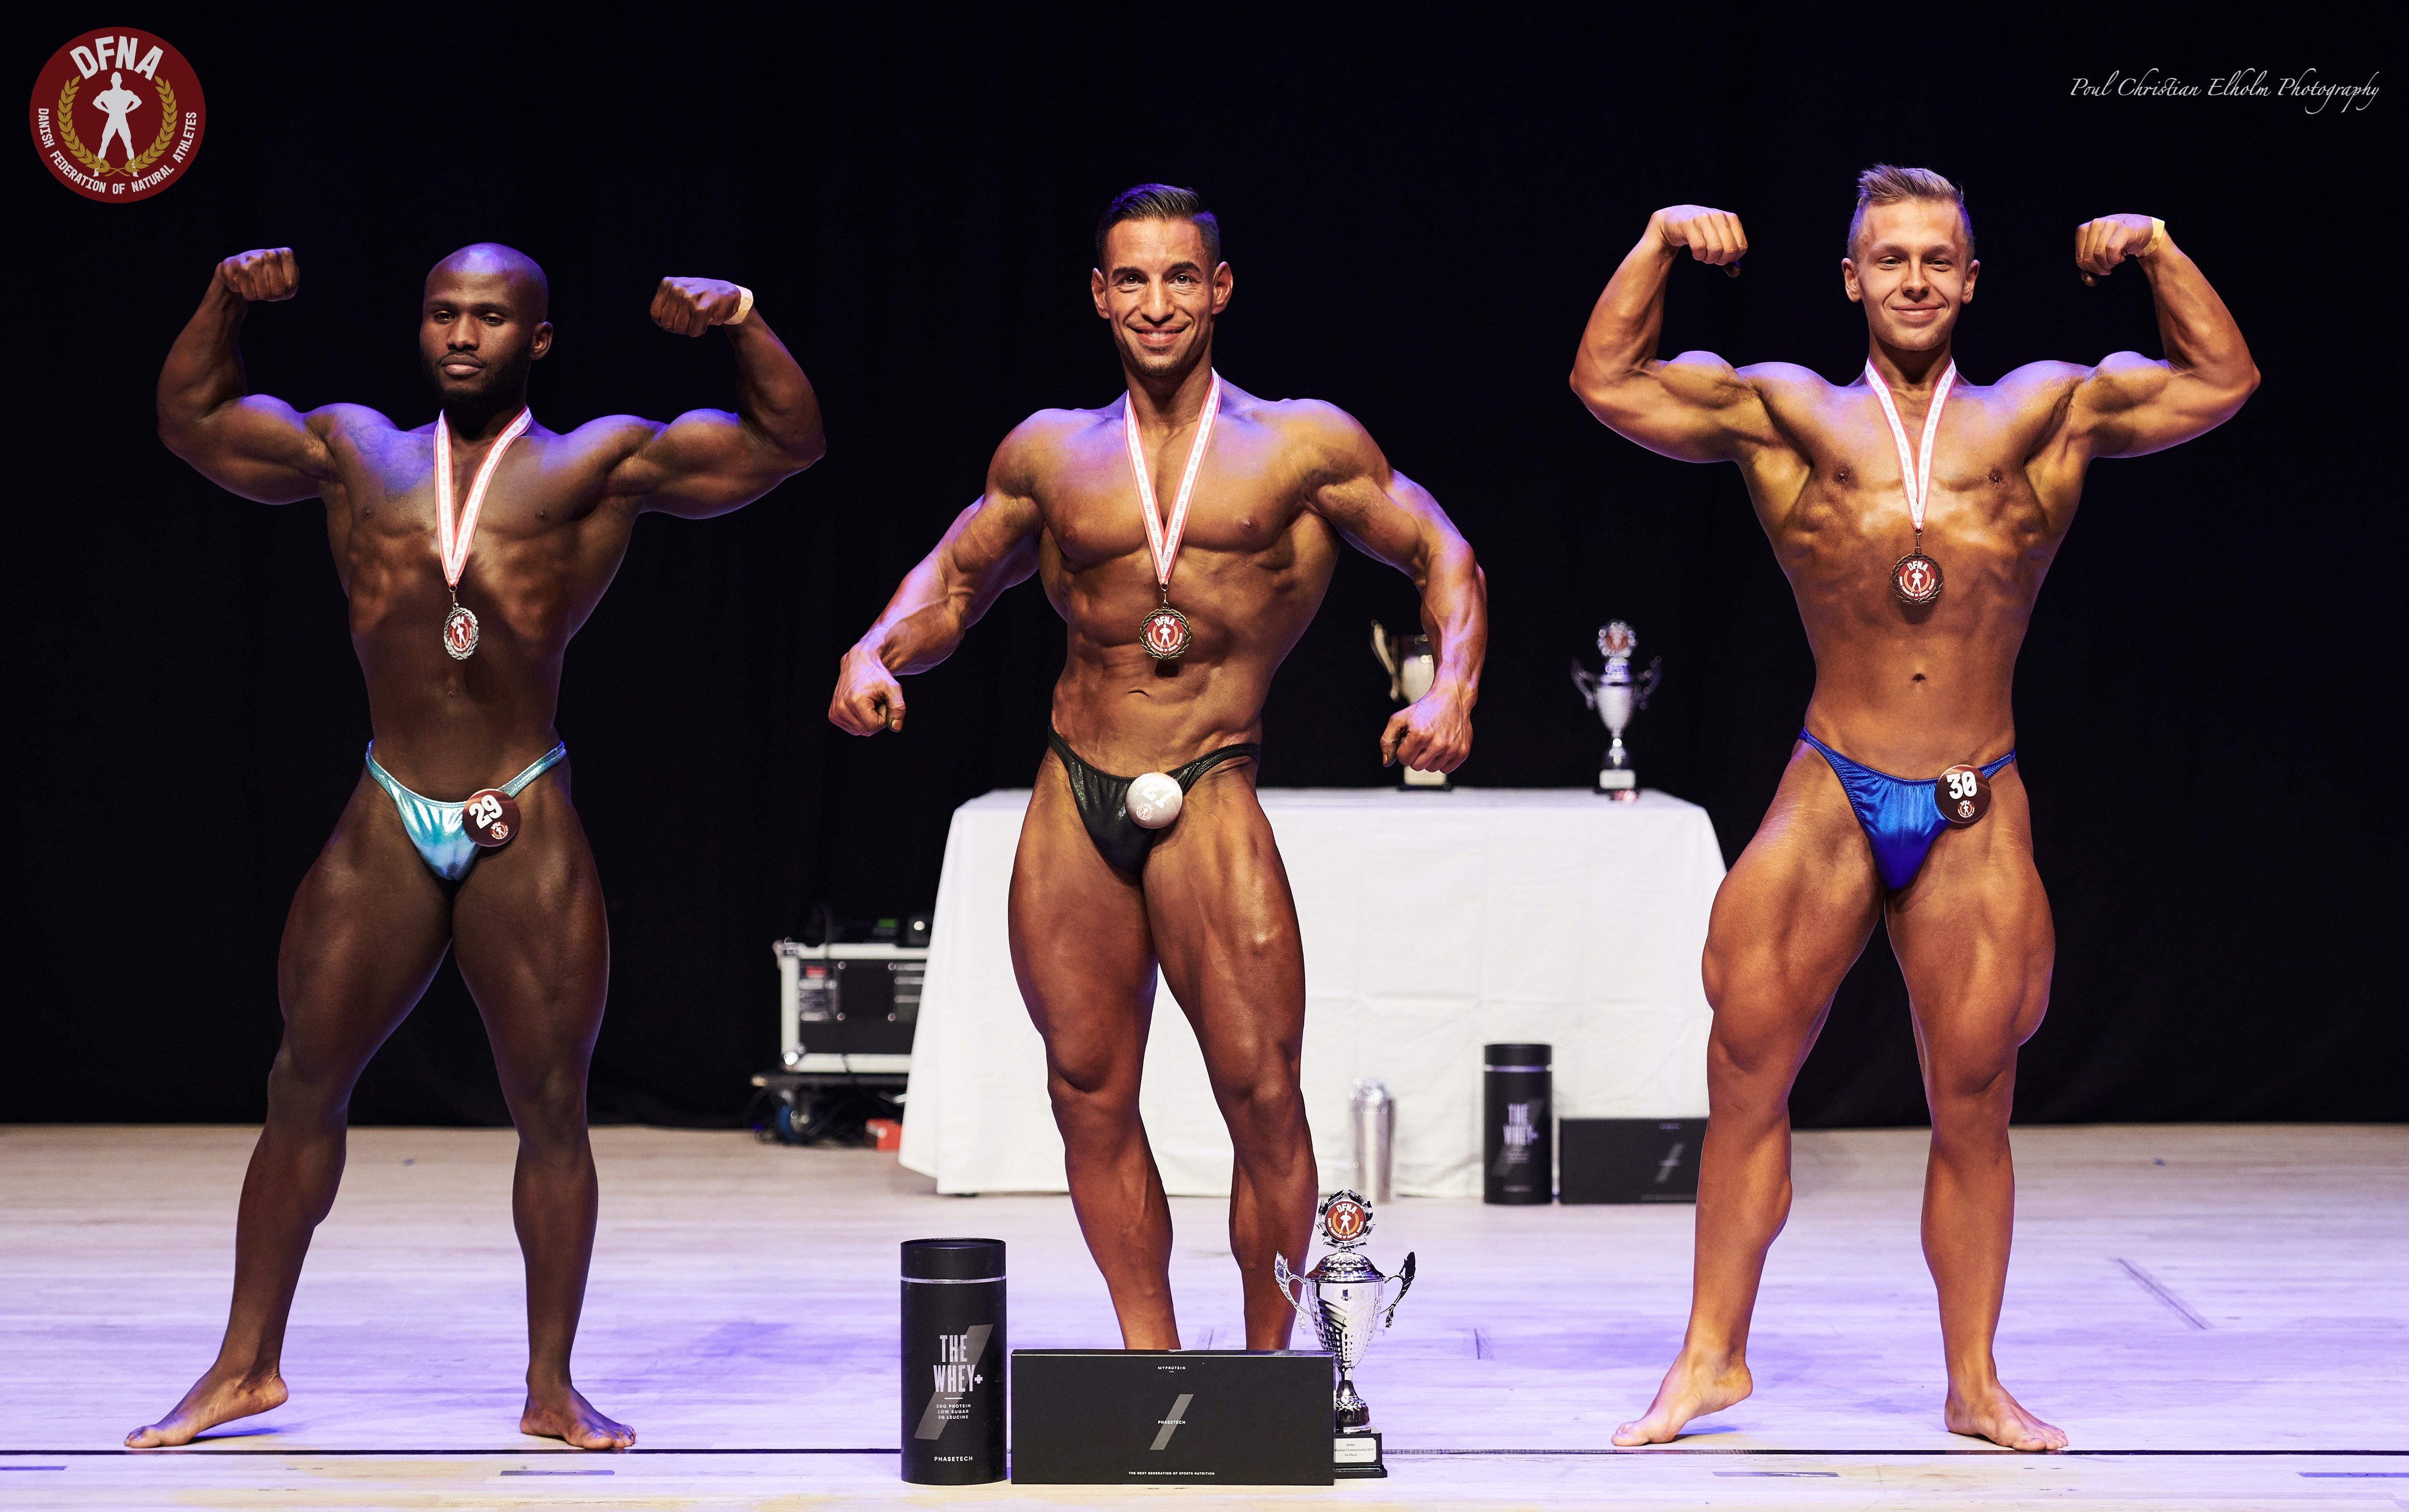 Top 3, Bodybuilding, Light Weight